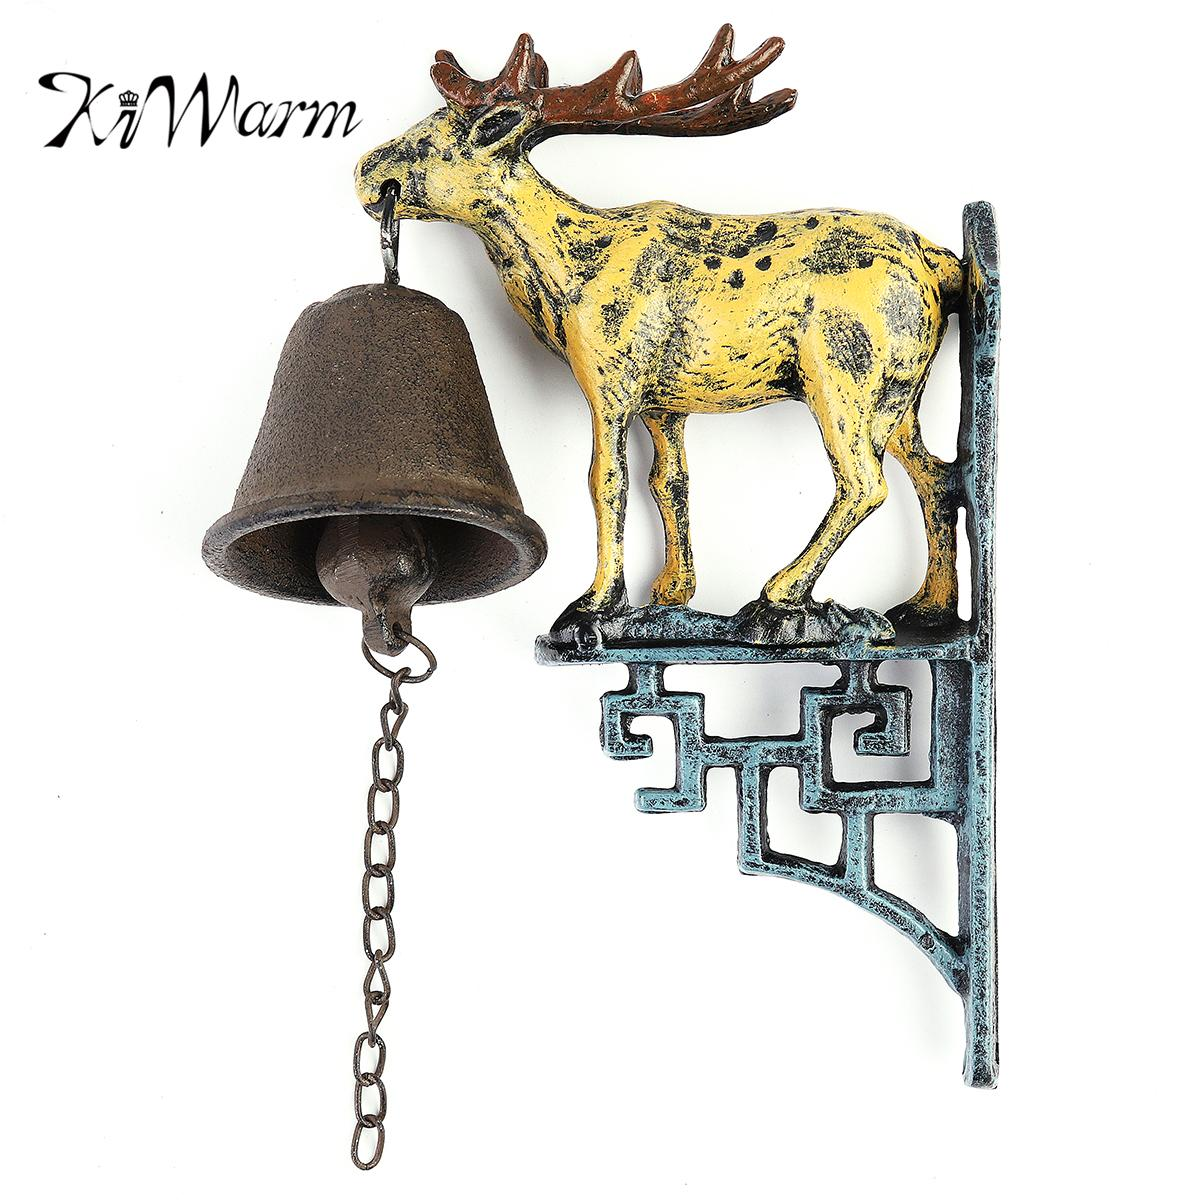 KiWarm Retro Cast Iron Door Bell Metal Wall Mounted Stag Head Deer Antler Reindeer Design for Home Garden Hanging Ornament